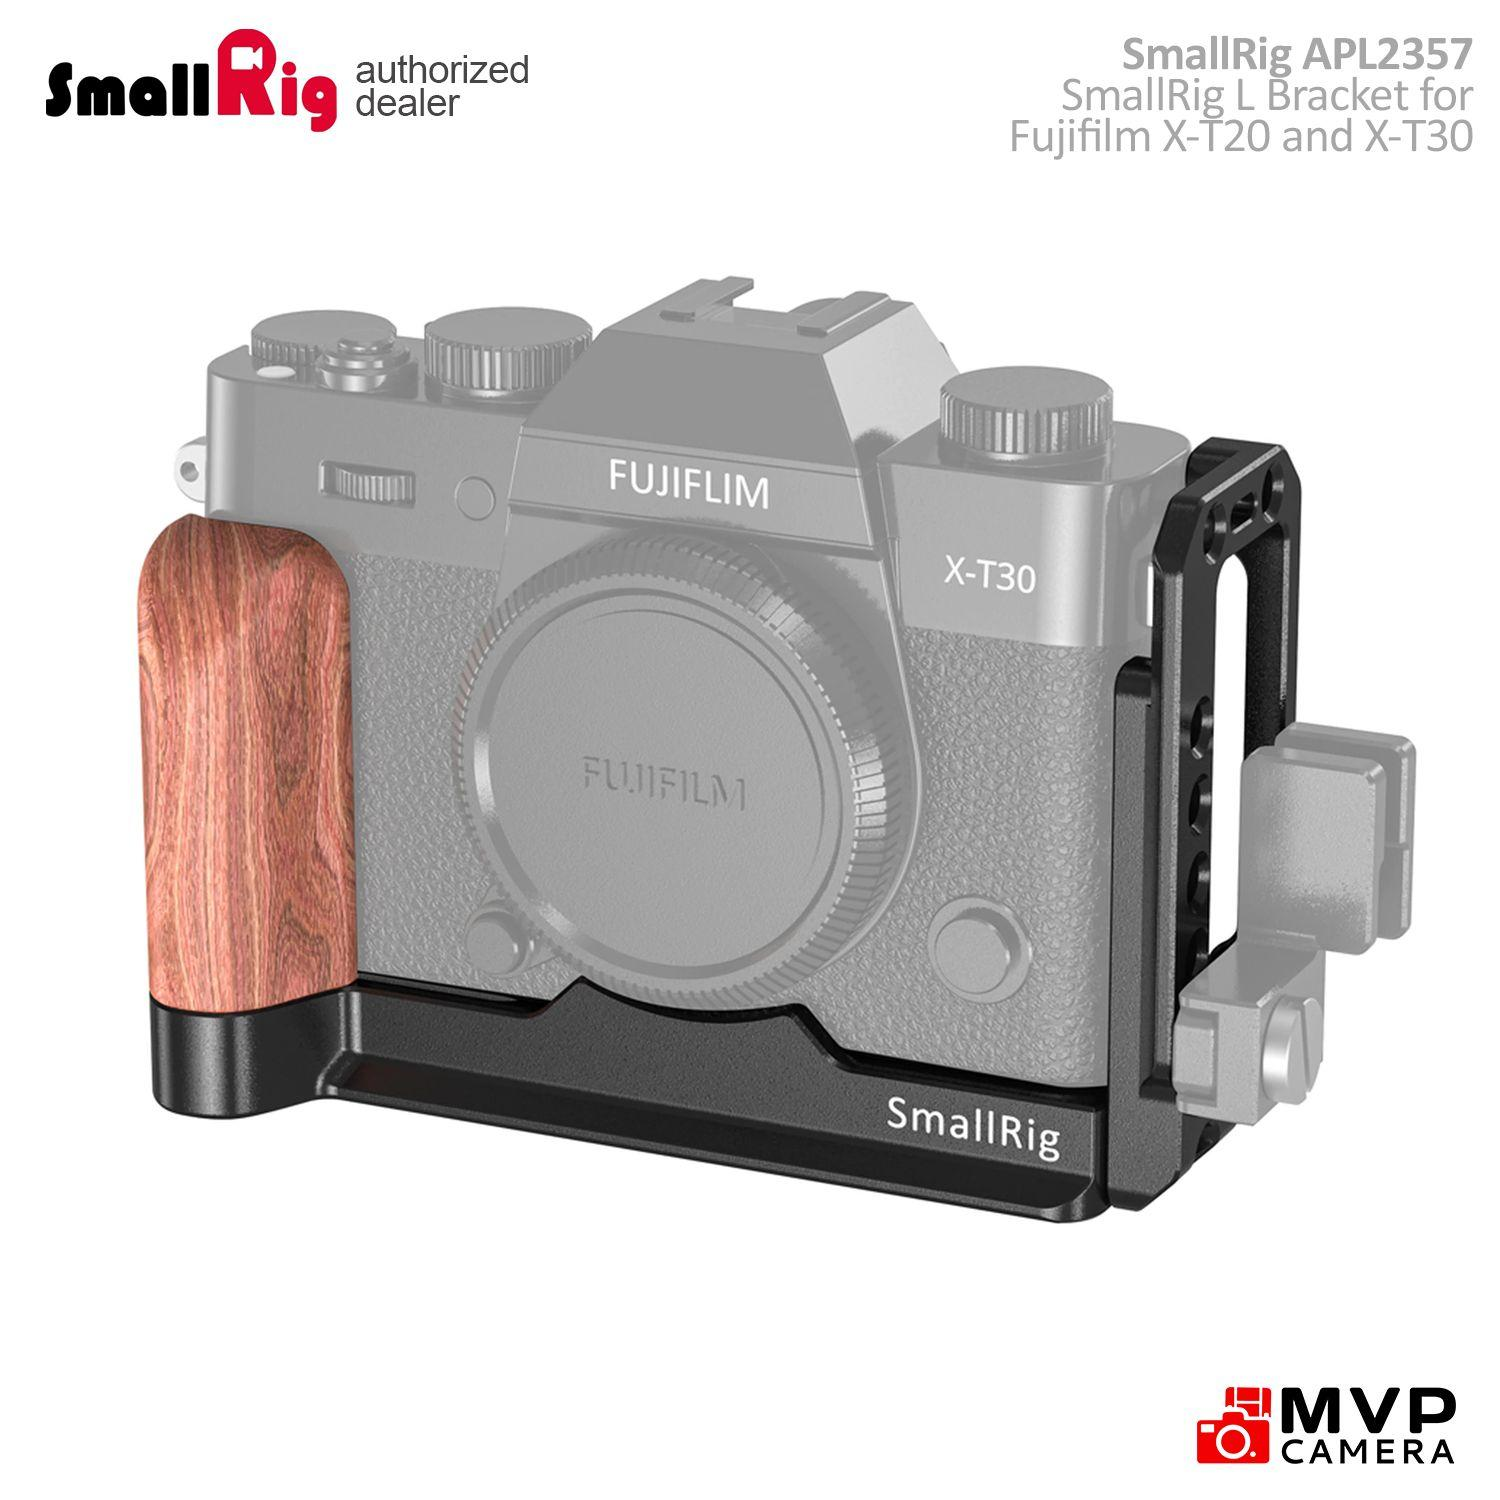 MENGS X-T20 L-Shaped Quick Release Plate With Hand Grip And Aluminum Alloy Material For Fujifilm X-T20 Camera Compatible With Arca-Swiss Standard